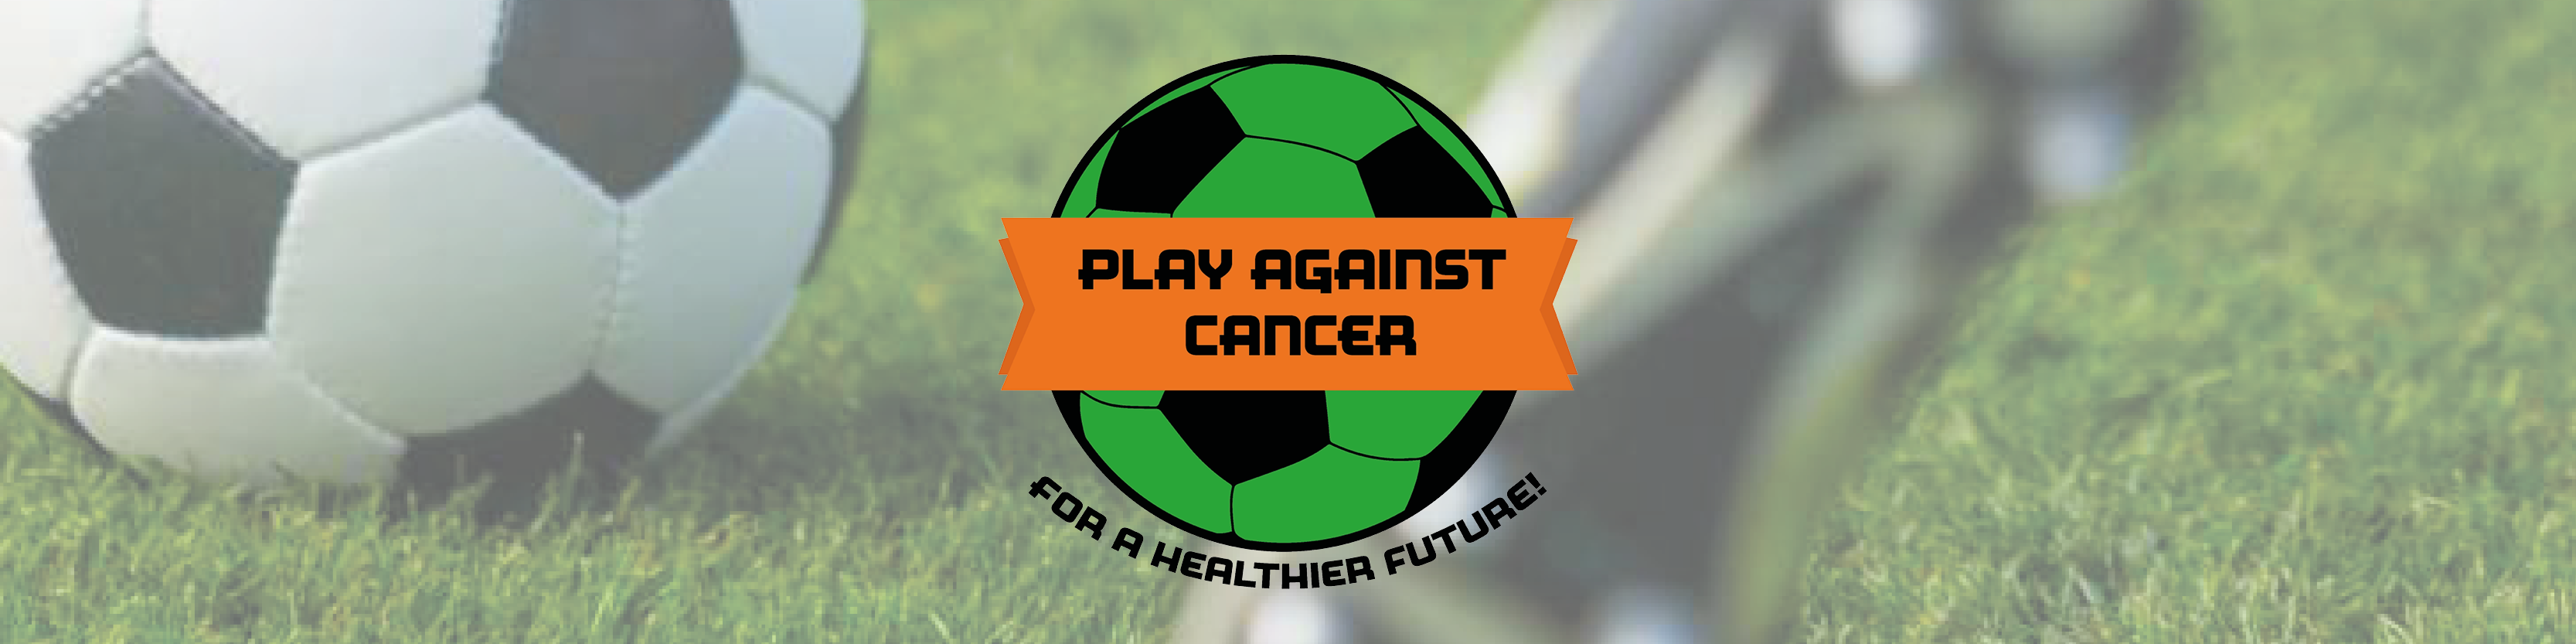 Play against cancer